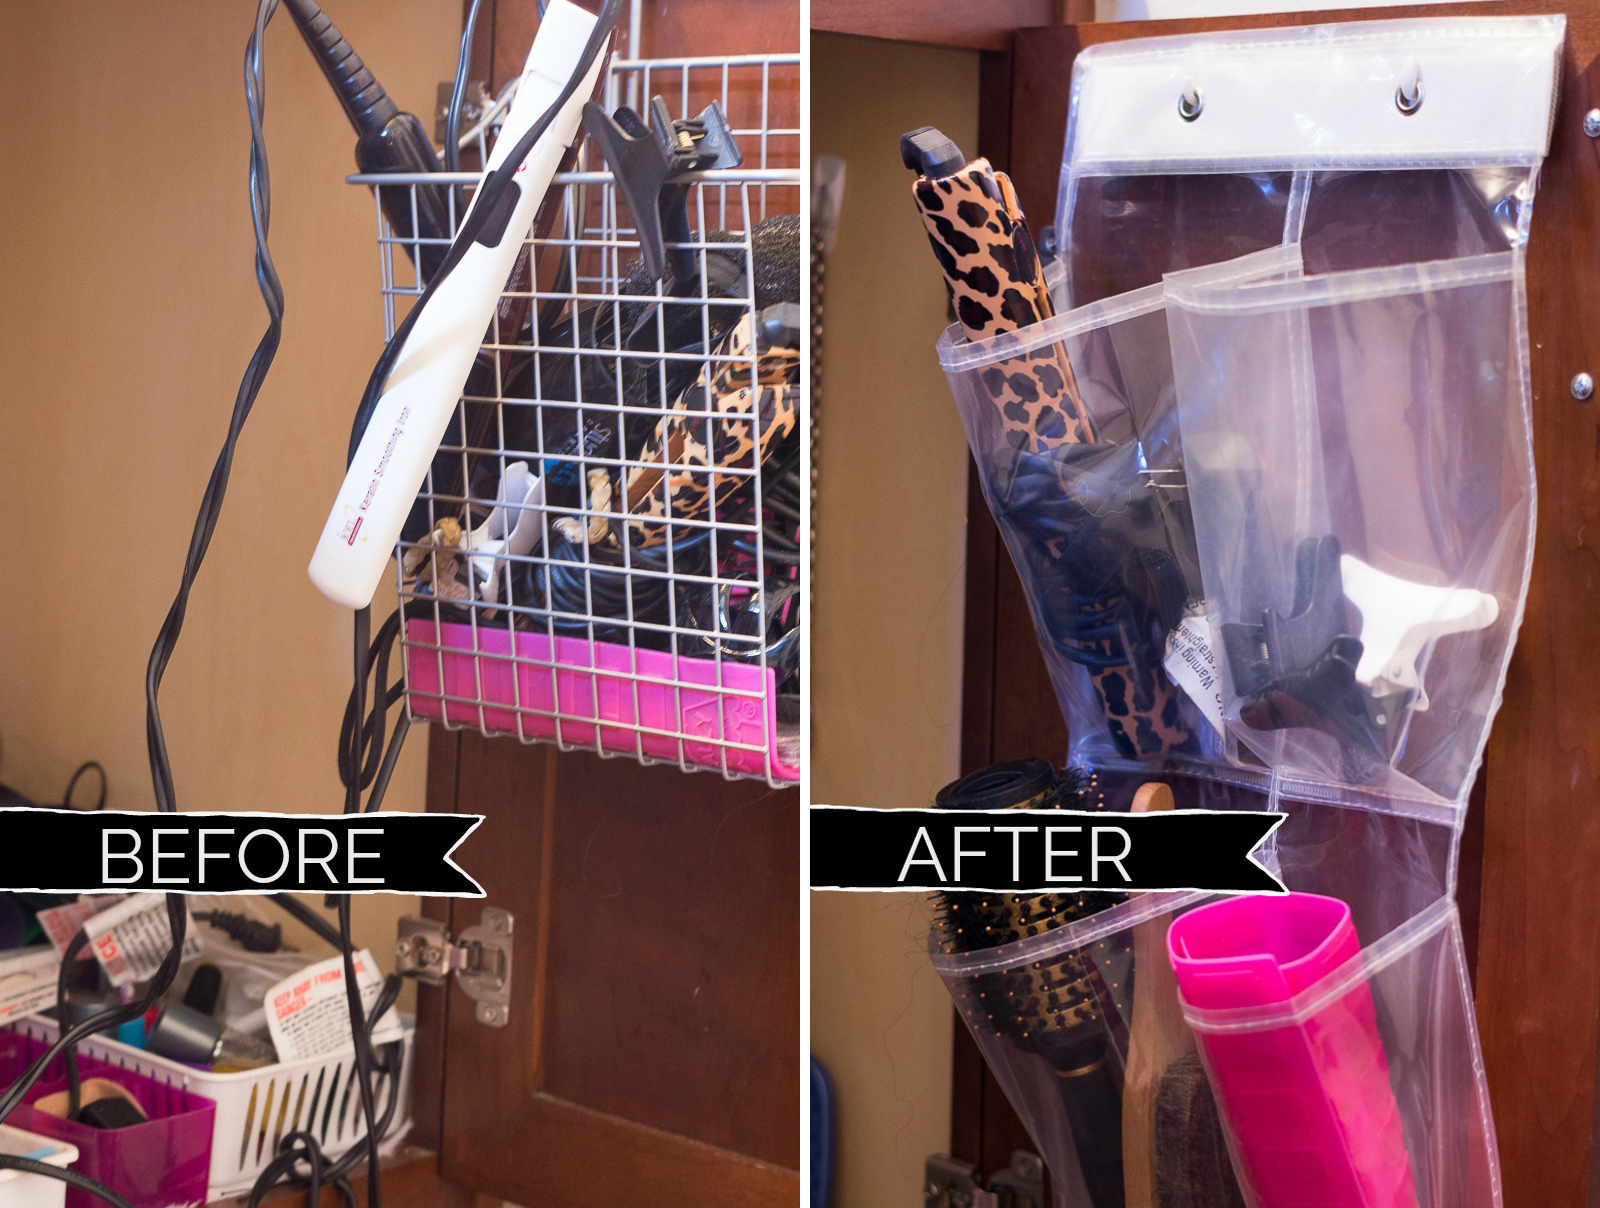 Bathroom Organization Ideas: DIY door organizer for flat irons and hair supplies (before and after)